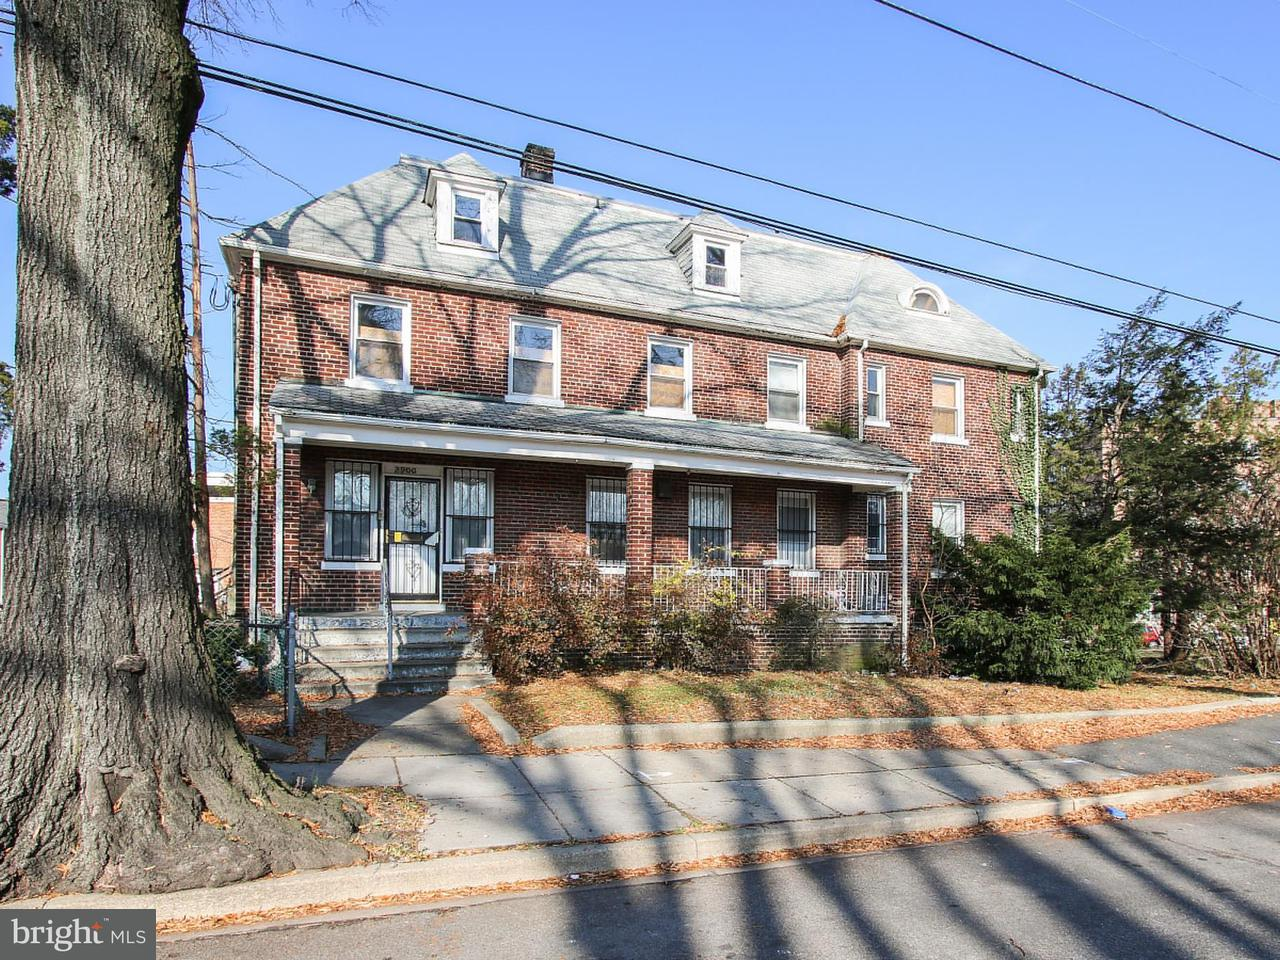 Single Family Home for Sale at 2900 Rhode Island Ave Ne 2900 Rhode Island Ave Ne Washington, District Of Columbia 20018 United States